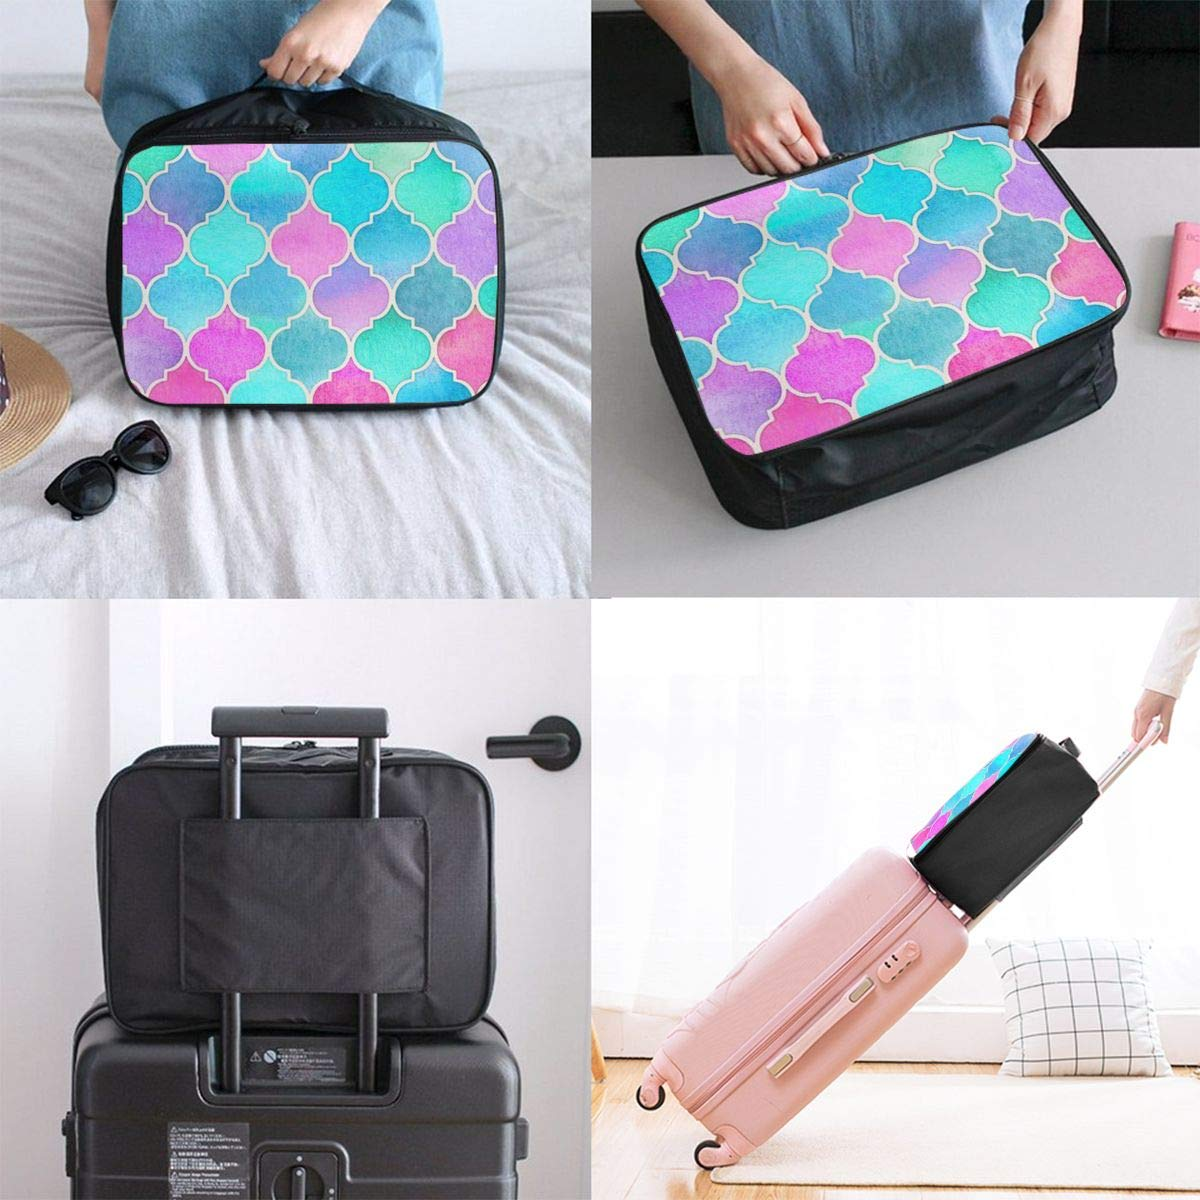 Travel Duffel Bag Waterproof Fashion Lightweight Large Capacity Portable Luggage Bag Colorful Mermaid Fish Scales